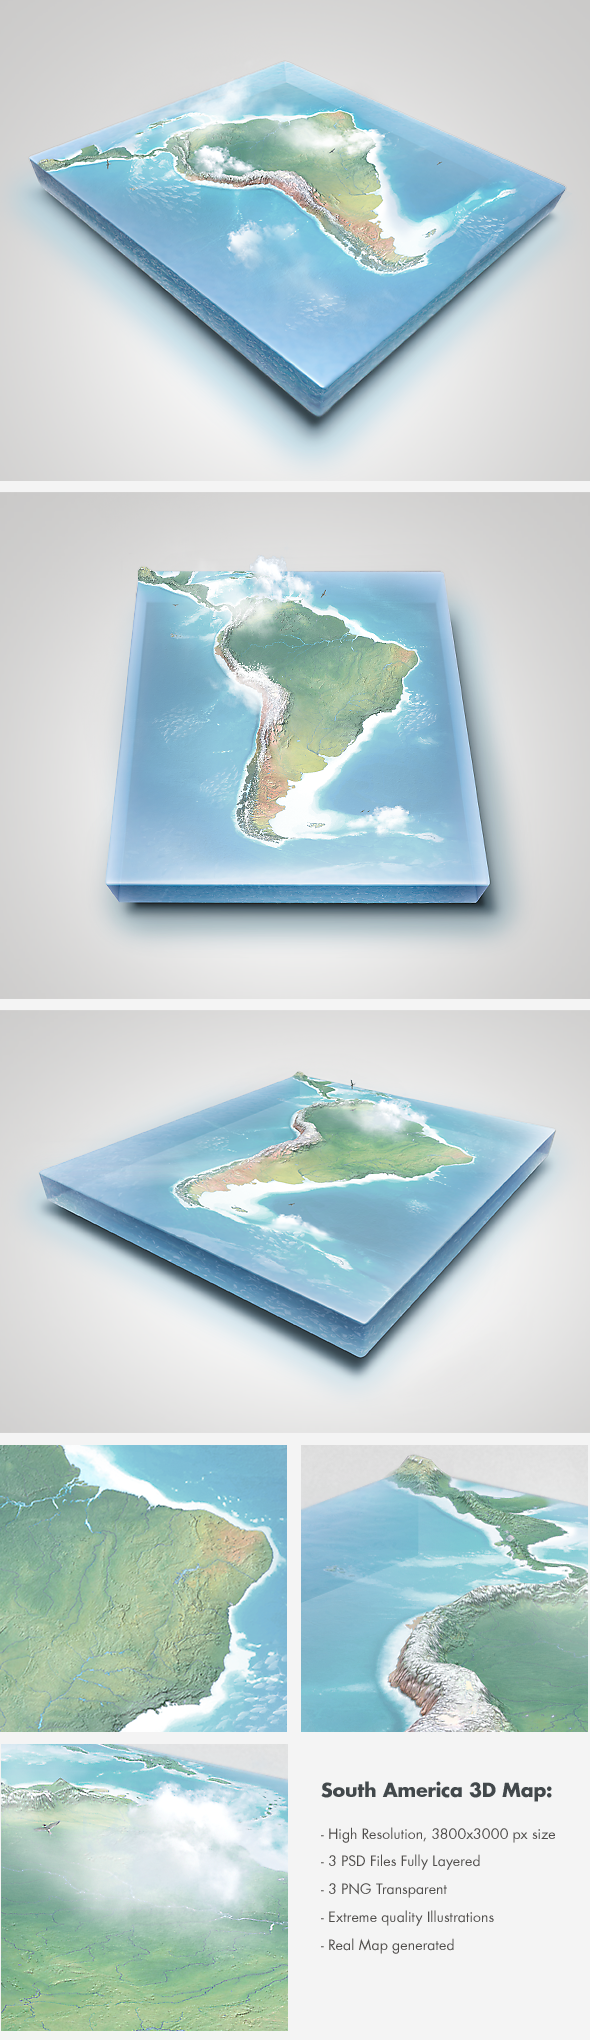 Realistic South America 3D Map - Layered by Giallo86